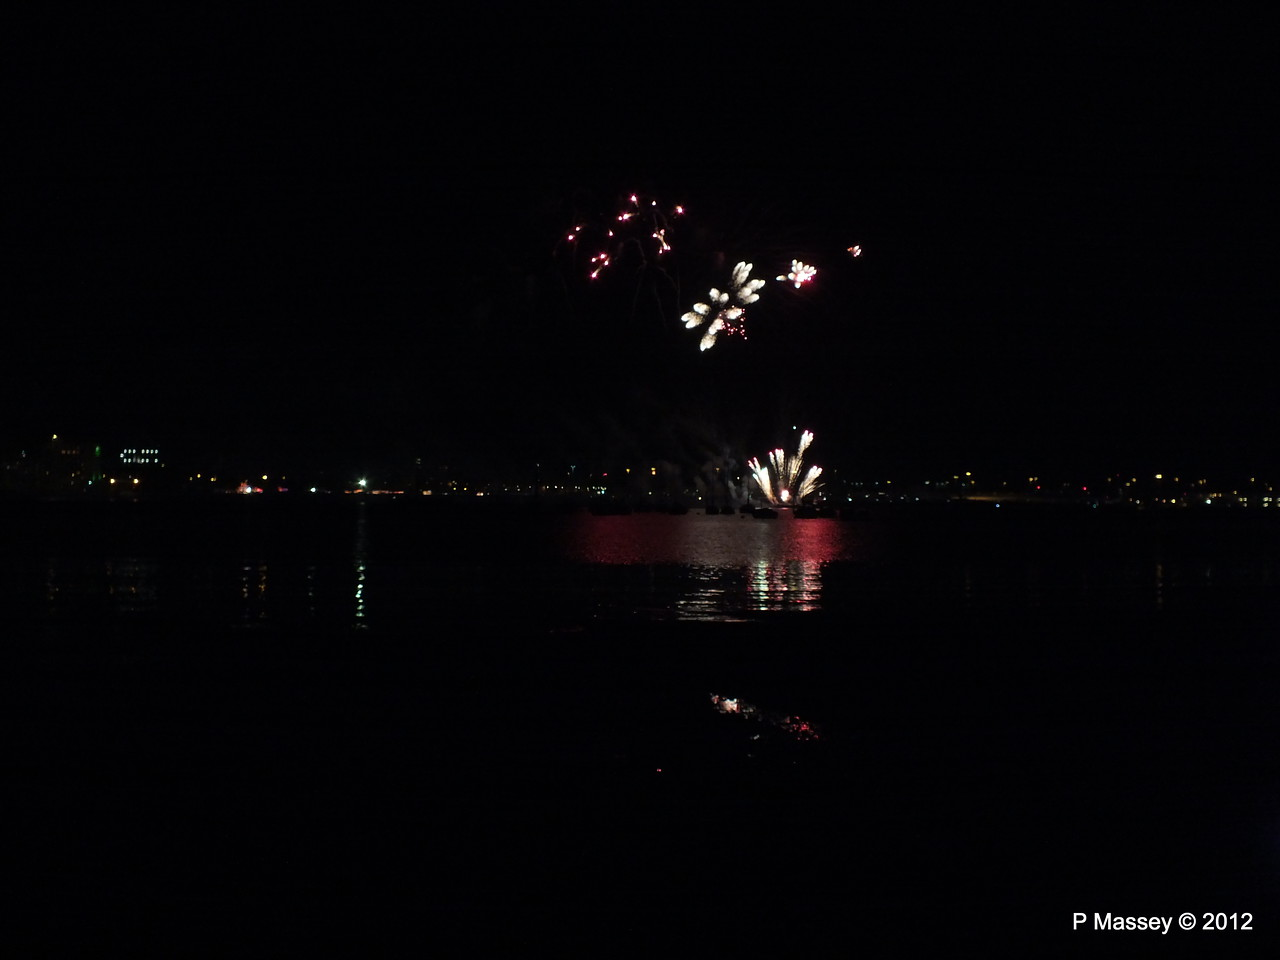 Fireworks off Mayflower Park PDM 03-11-2012 20-44-19